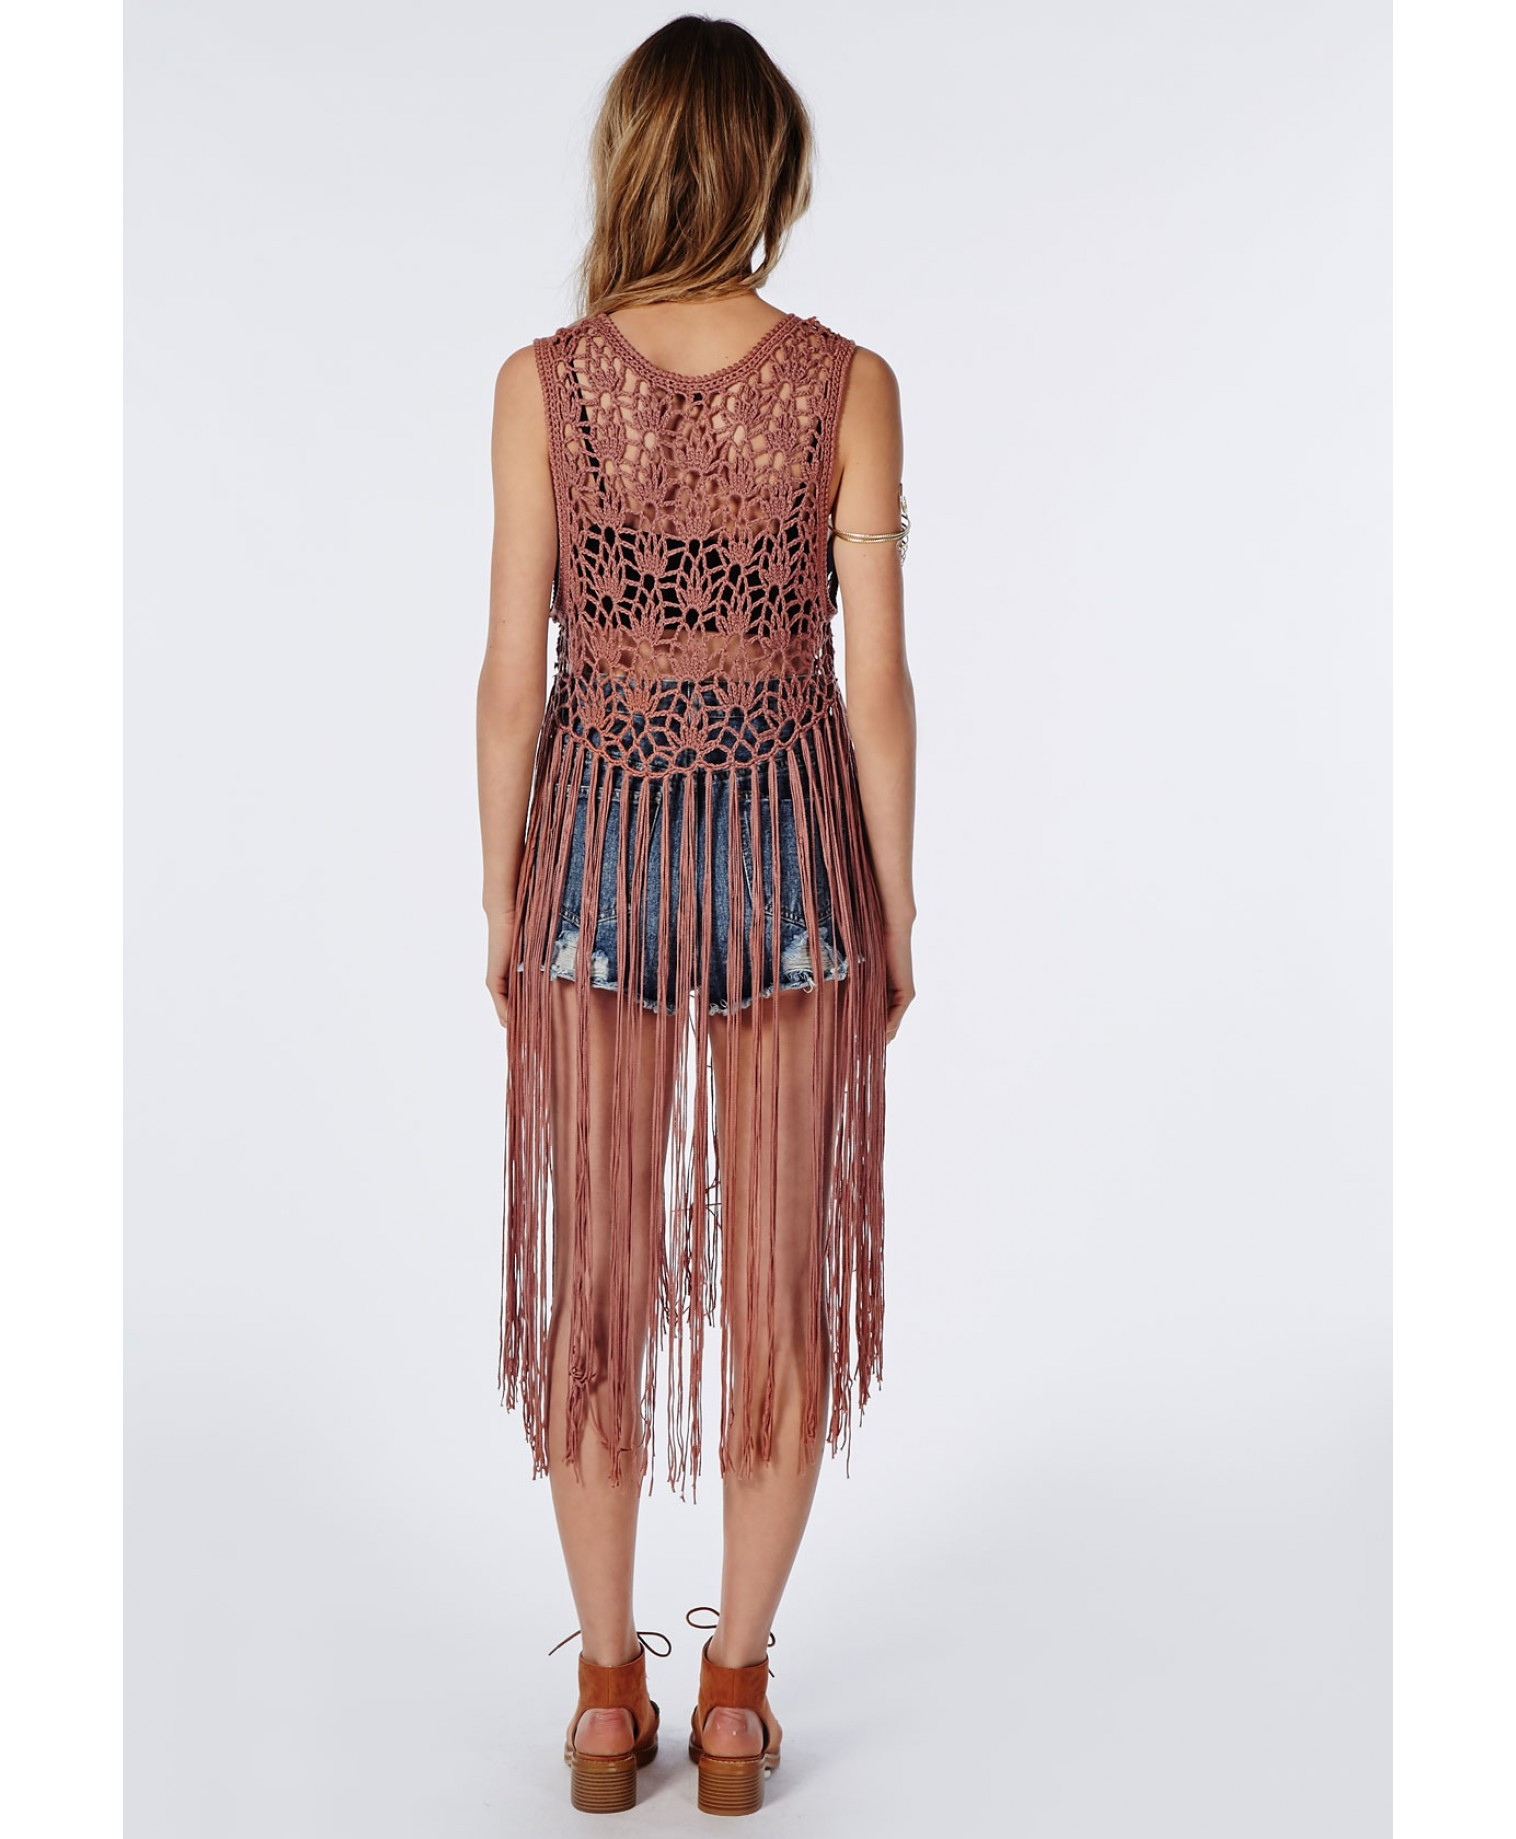 Unique Missguided Crochet Knitted Fringe Vest Rust In Brown Rust Crochet Vest with Fringe Pattern Of Brilliant 40 Images Crochet Vest with Fringe Pattern